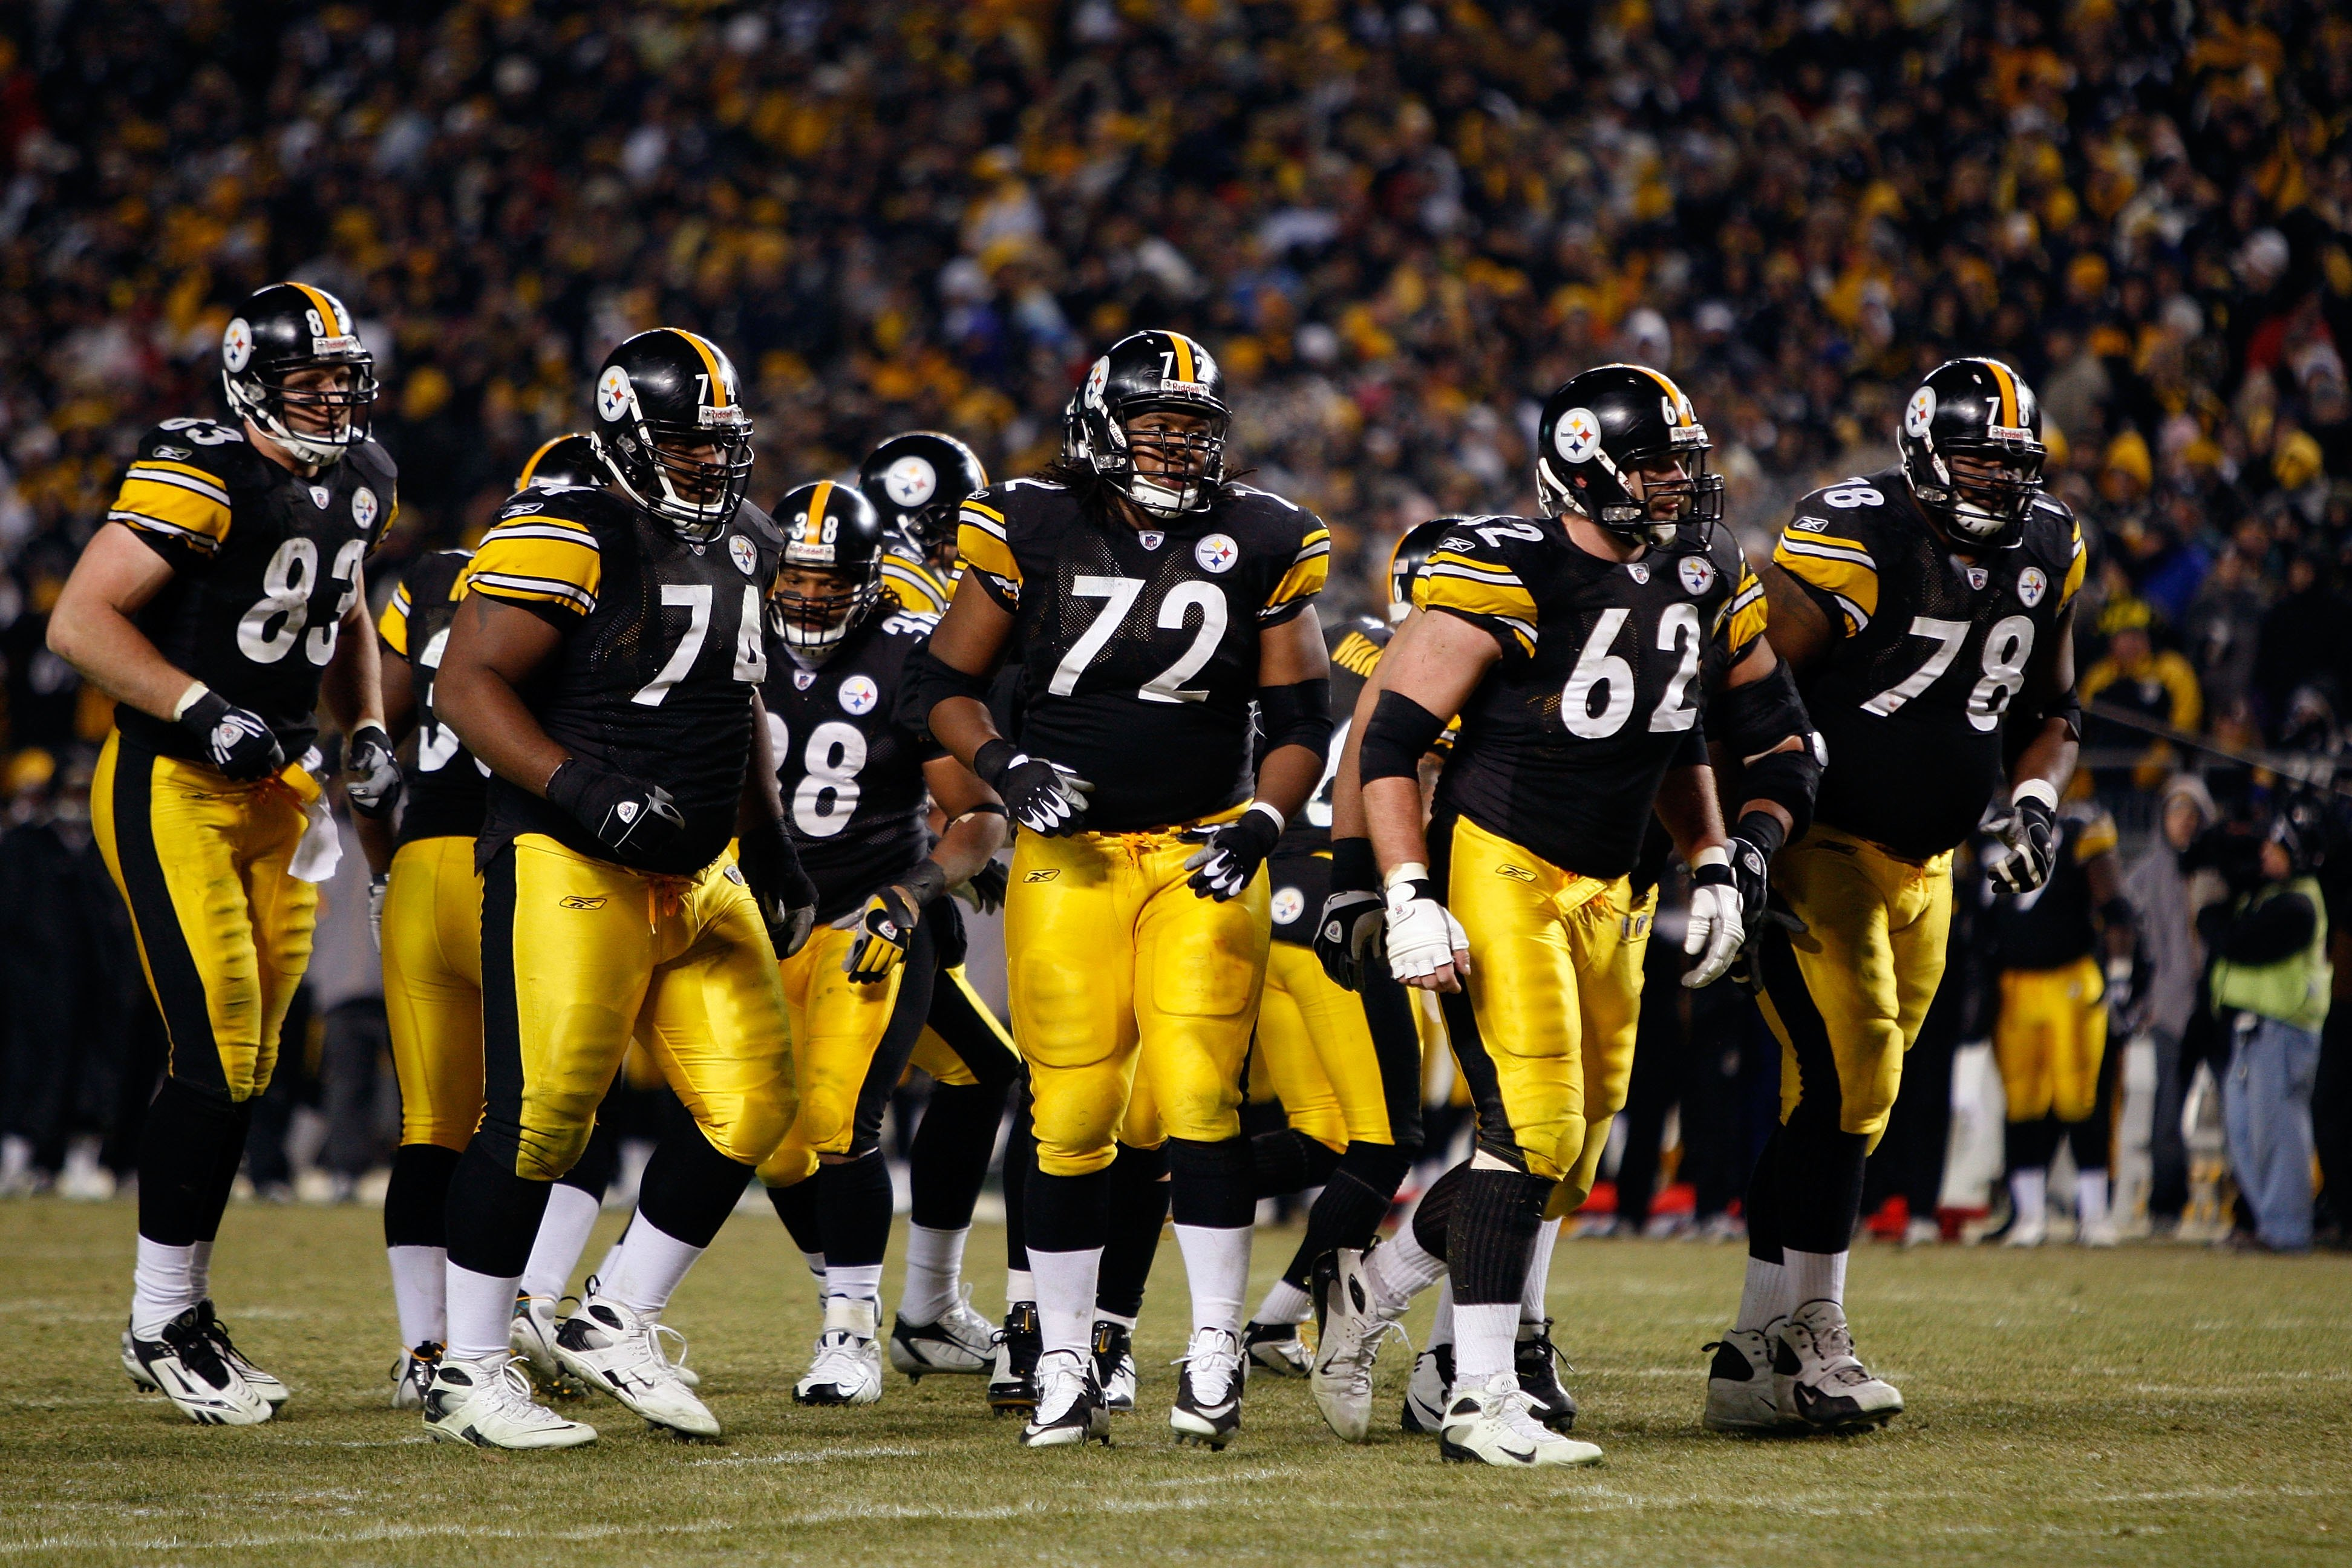 PITTSBURGH - JANUARY 11:  (L-R) Heath Miller #83, Willie Colon #74, Carey Davis, #38, Darnell Stapleton #72, Justin Hartwig #62 and Max Starks #78 of the Pittsburgh Steelers break the offensive huddle against the San Diego Chargers during their AFC Divisi